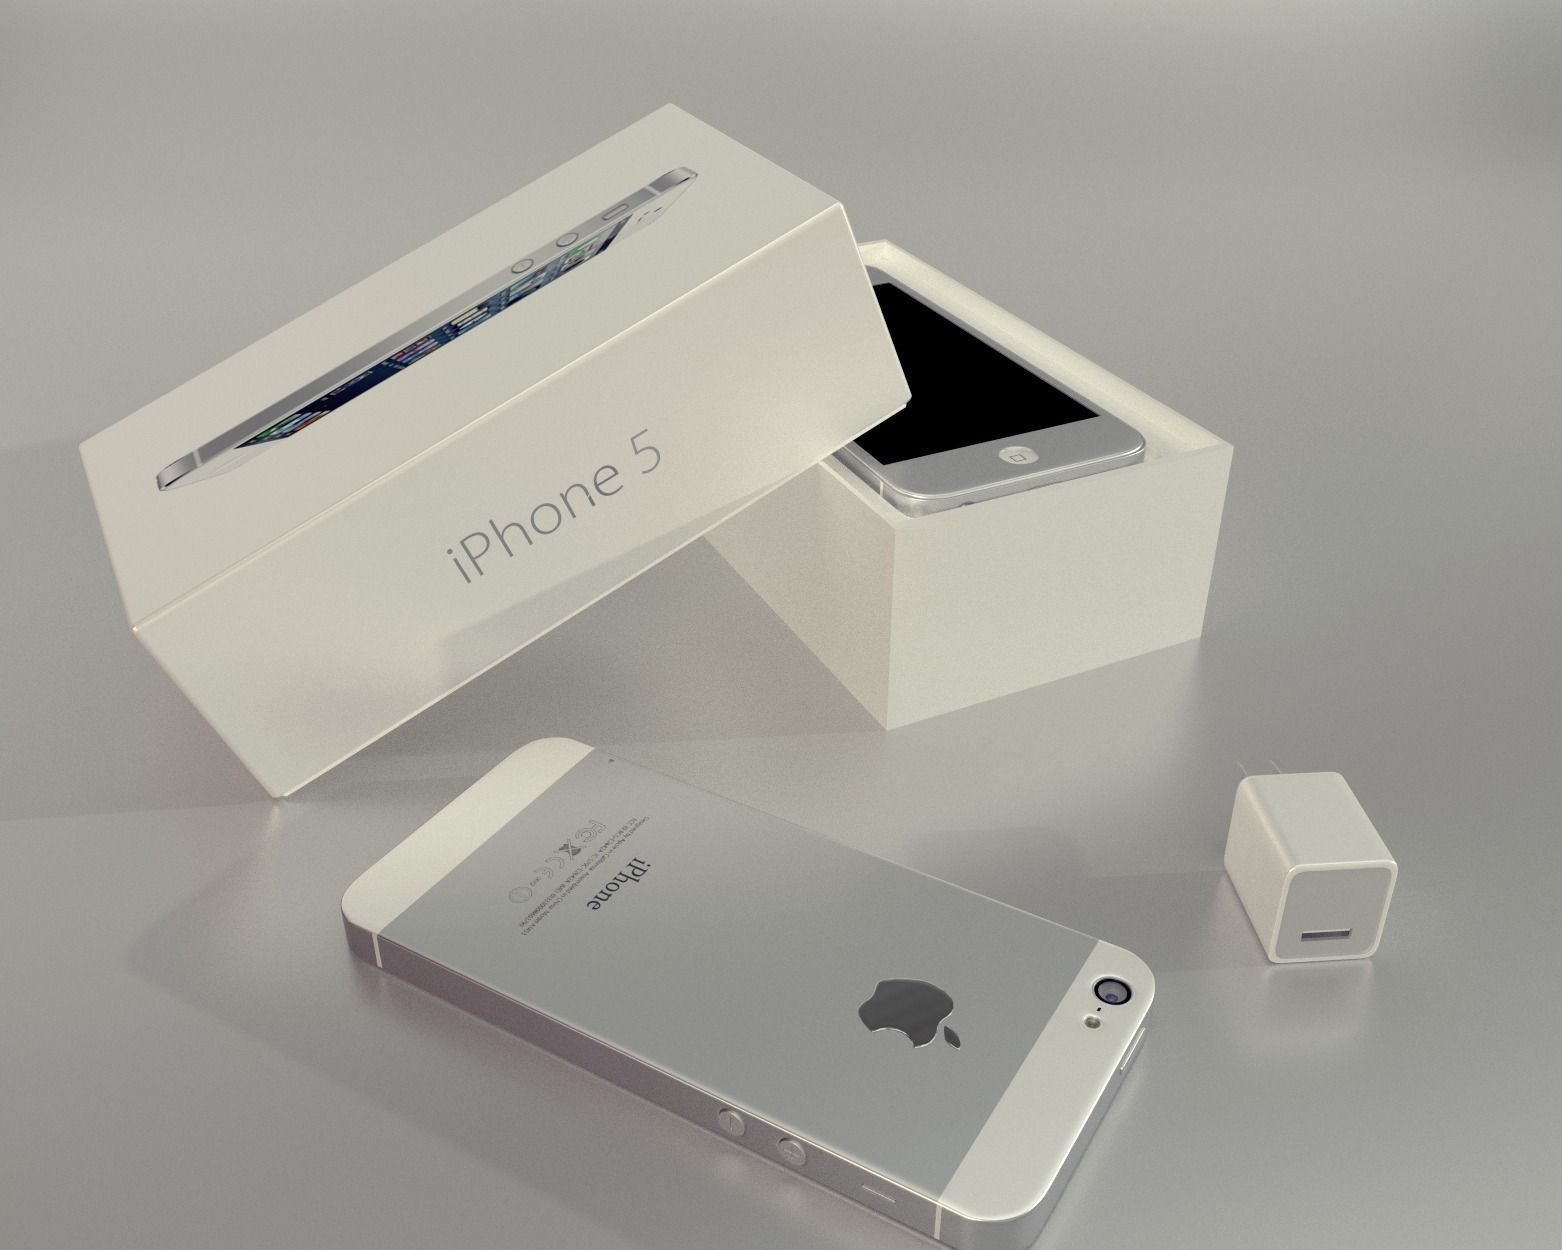 iphone 5 charger box images galleries with a bite. Black Bedroom Furniture Sets. Home Design Ideas